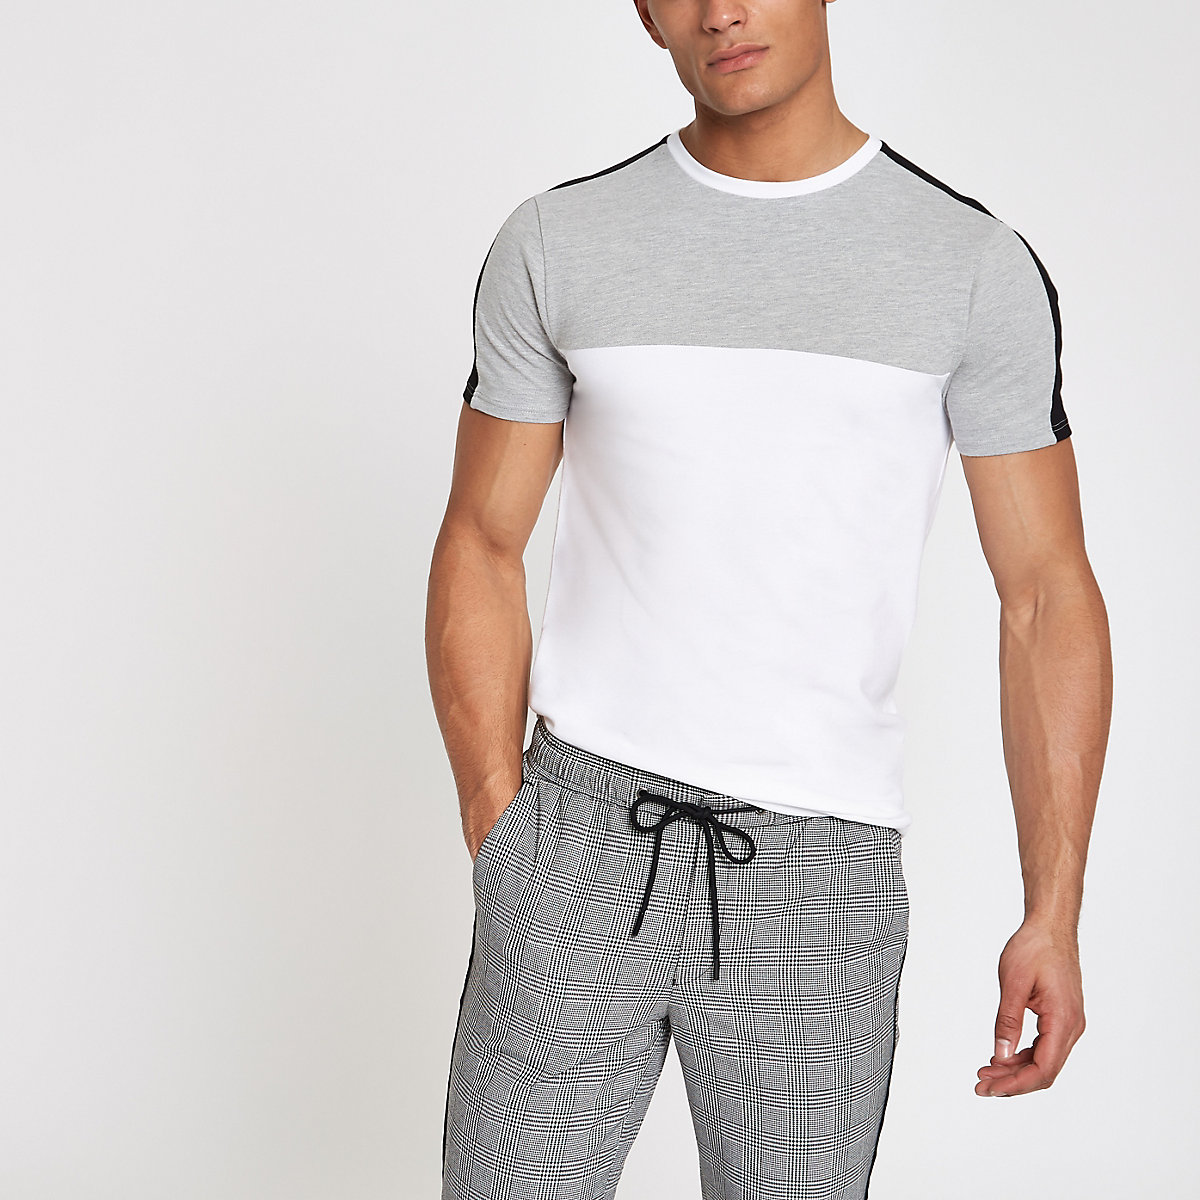 Grey muscle fit color block T-shirt